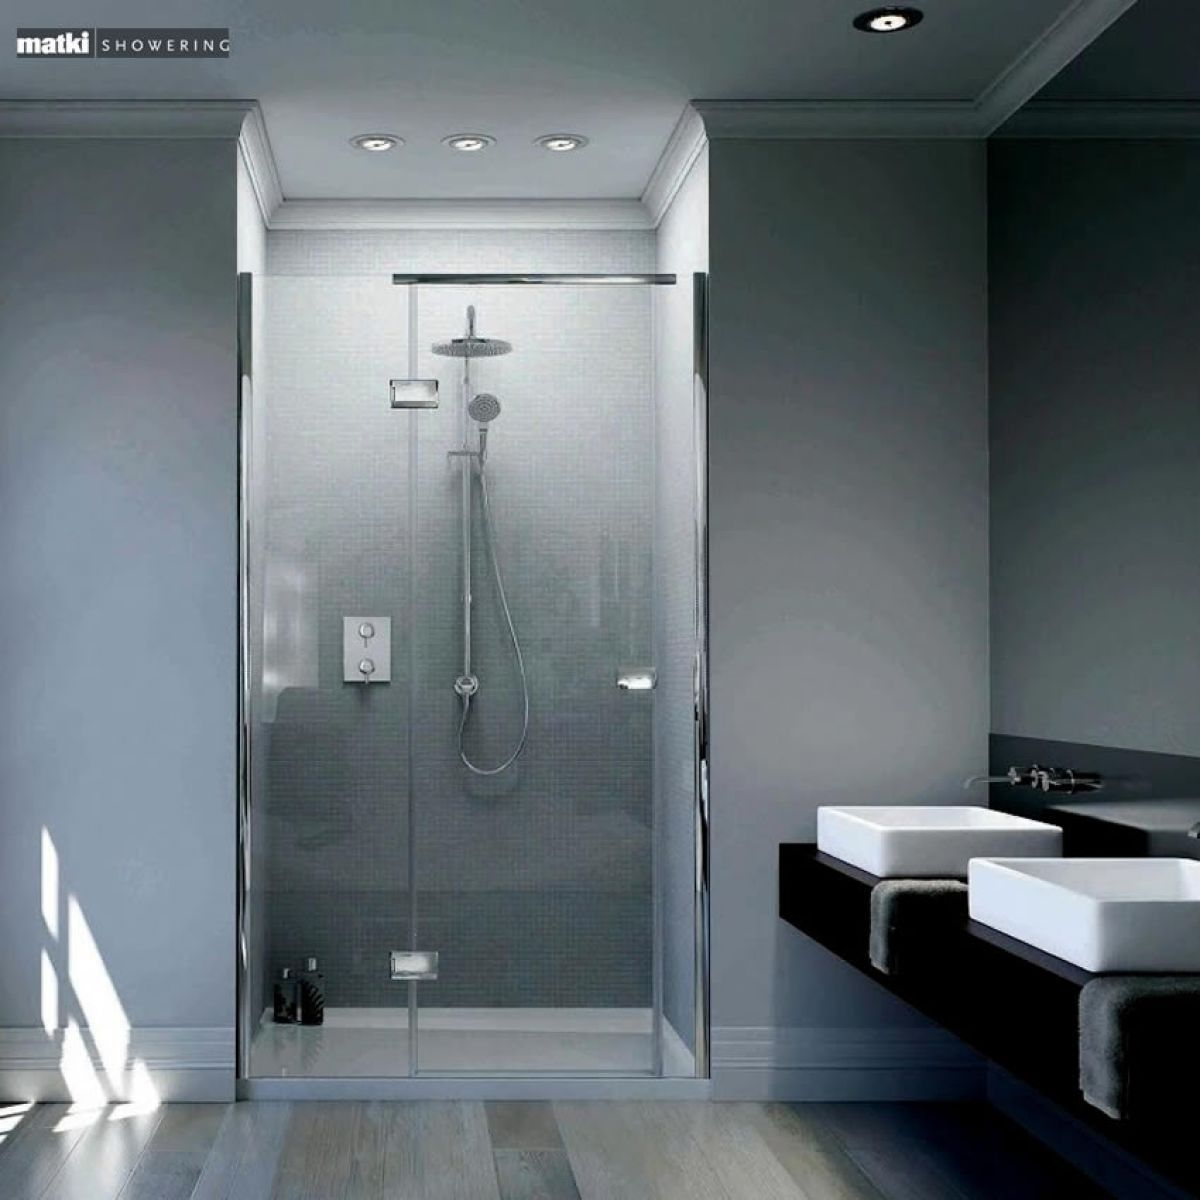 Matki New Illusion Recess Shower Enclosure with Integrated Tray ...